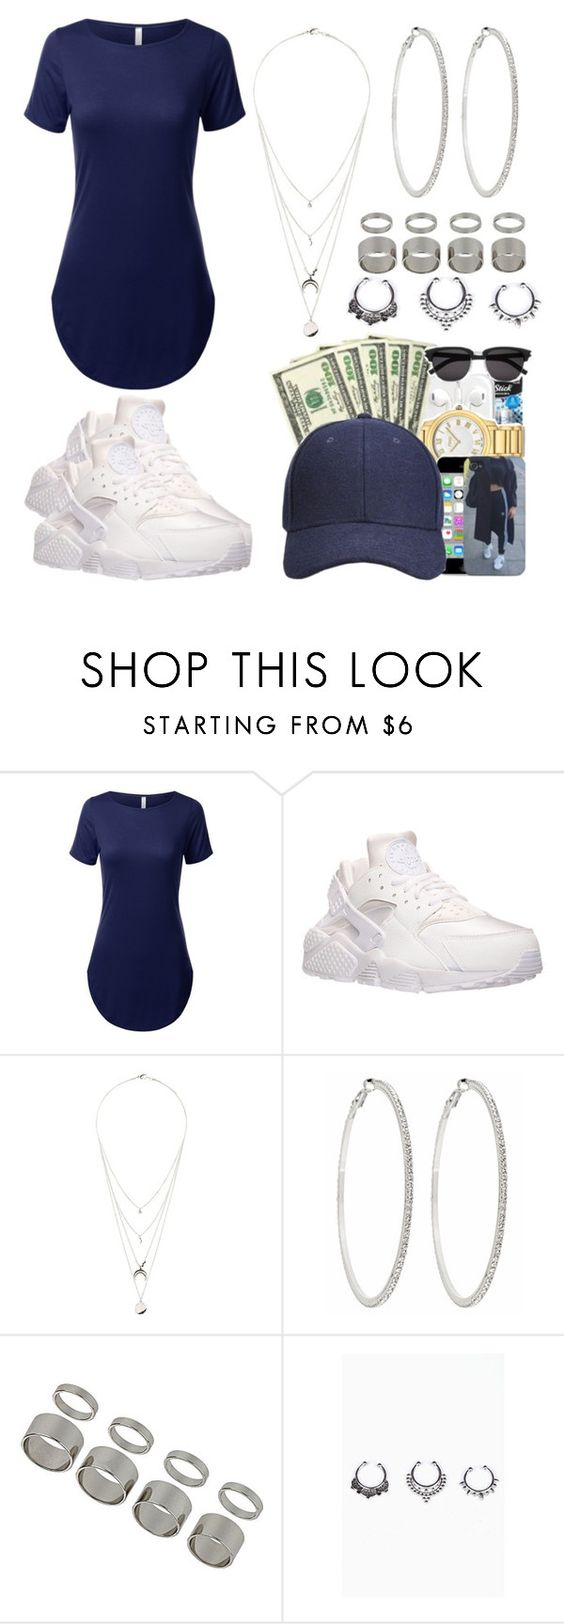 """Coffee~Miguel"" by life957 ❤ liked on Polyvore featuring NIKE, Charlotte Russe, Roberta Chiarella and Topshop"